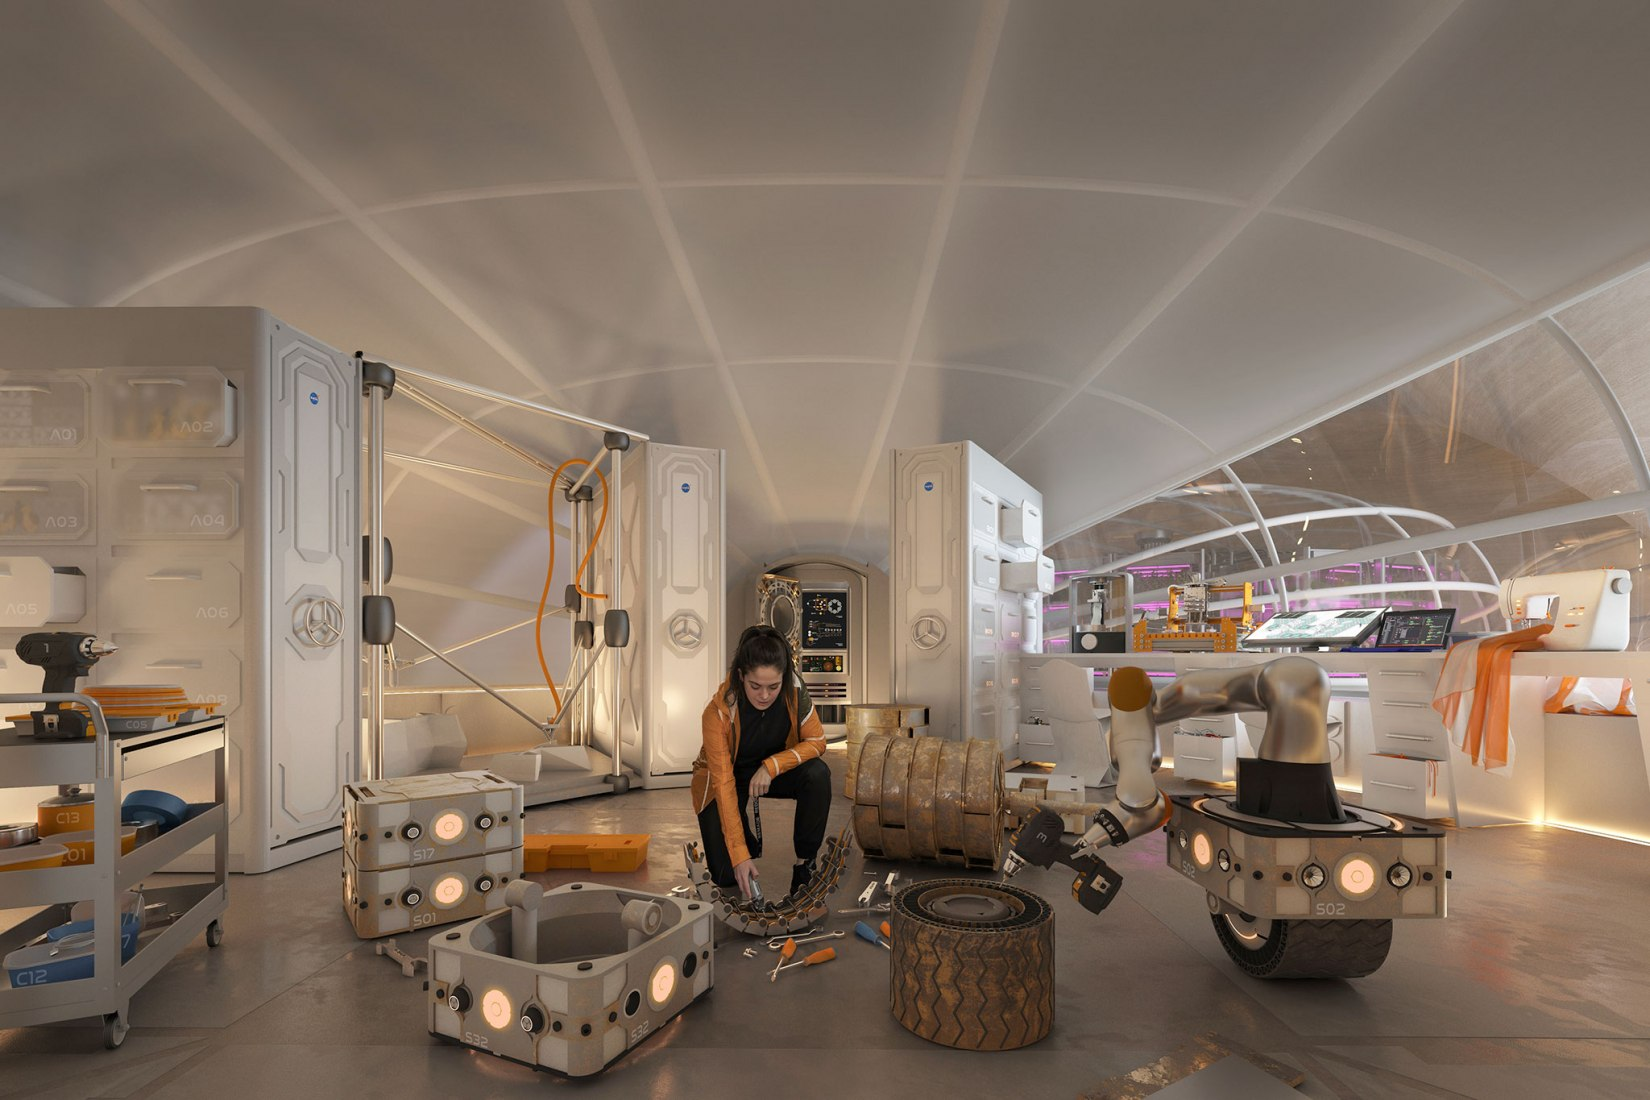 Mars Habitat by Hassell, image credit: HASSELL + Eckersley O'Callaghan.